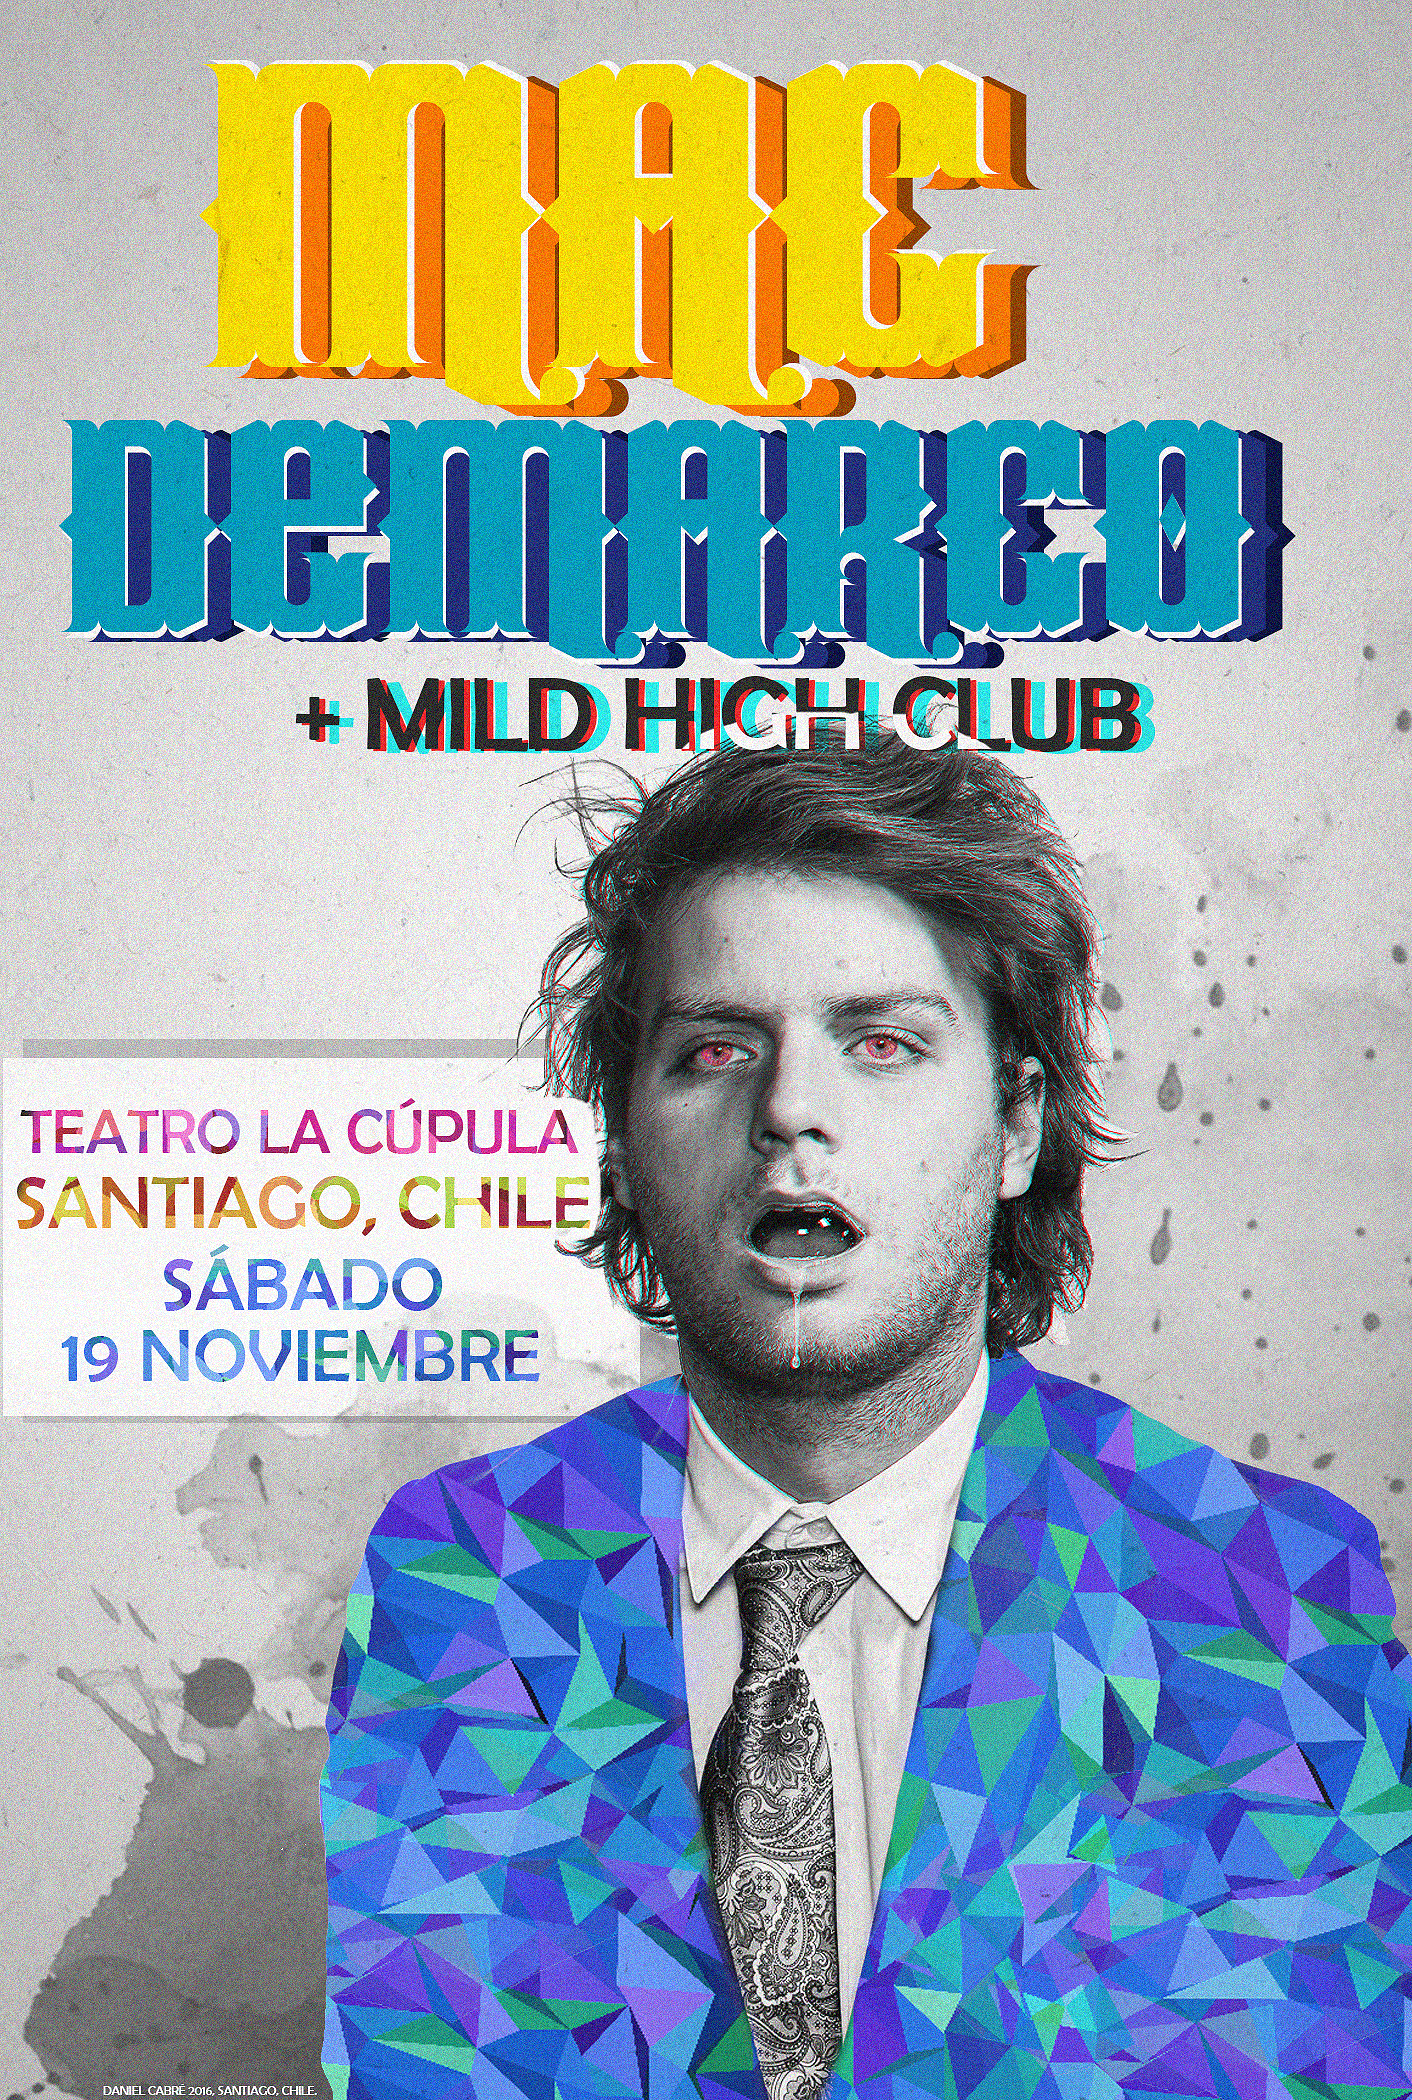 Mac DeMarco Chile 2016 Mac_demarco_chile_2016_by_gresives-daorxyf